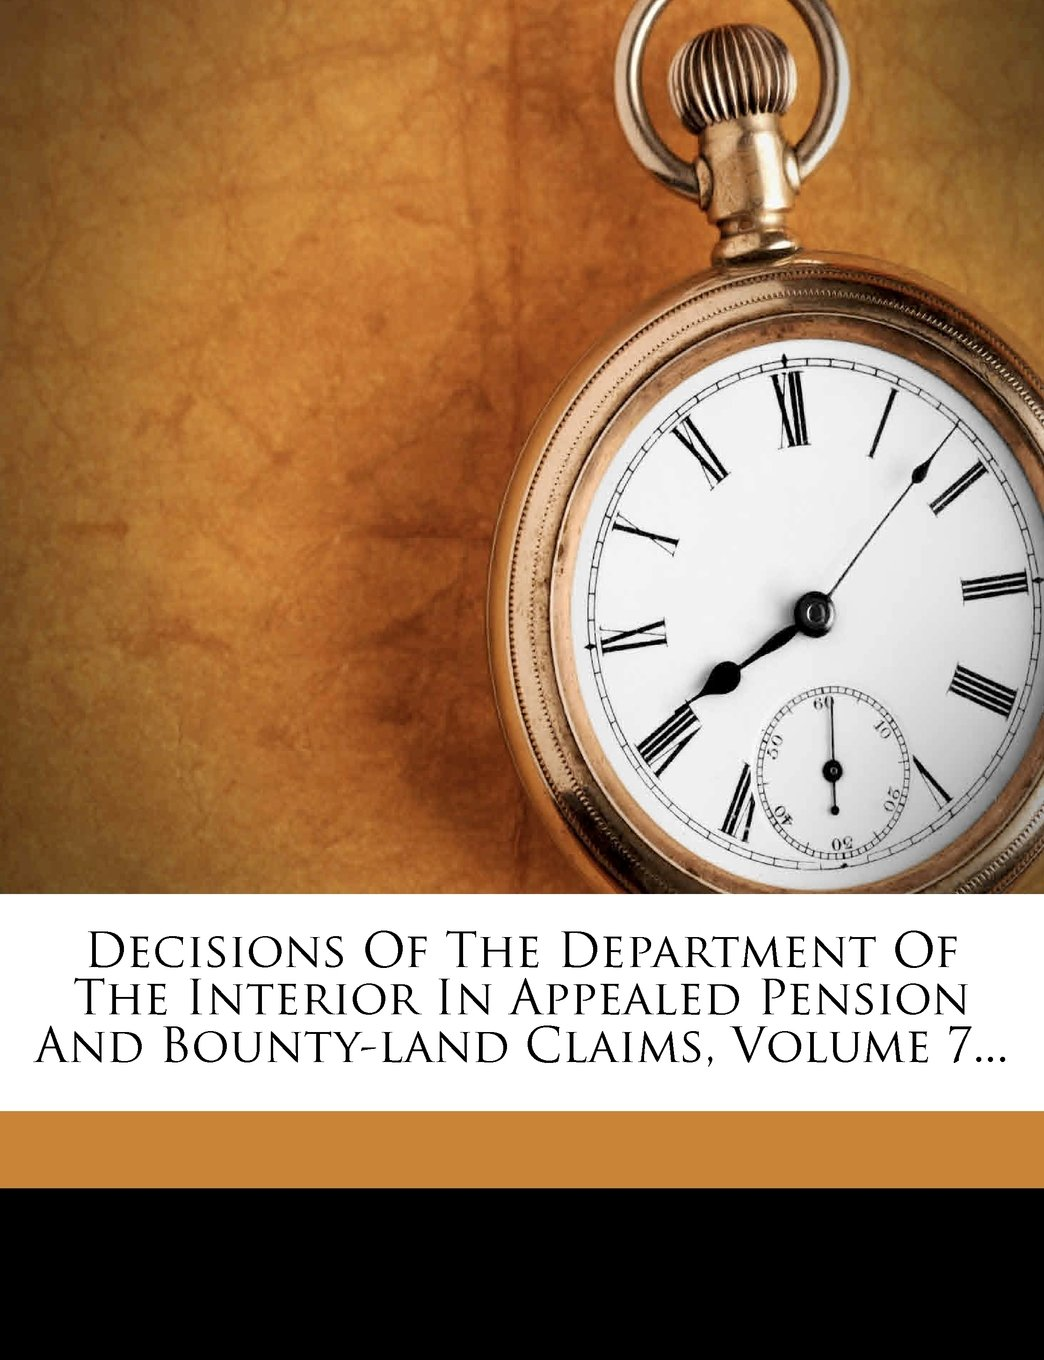 Decisions Of The Department Of The Interior In Appealed Pension And Bounty-land Claims, Volume 7... ebook